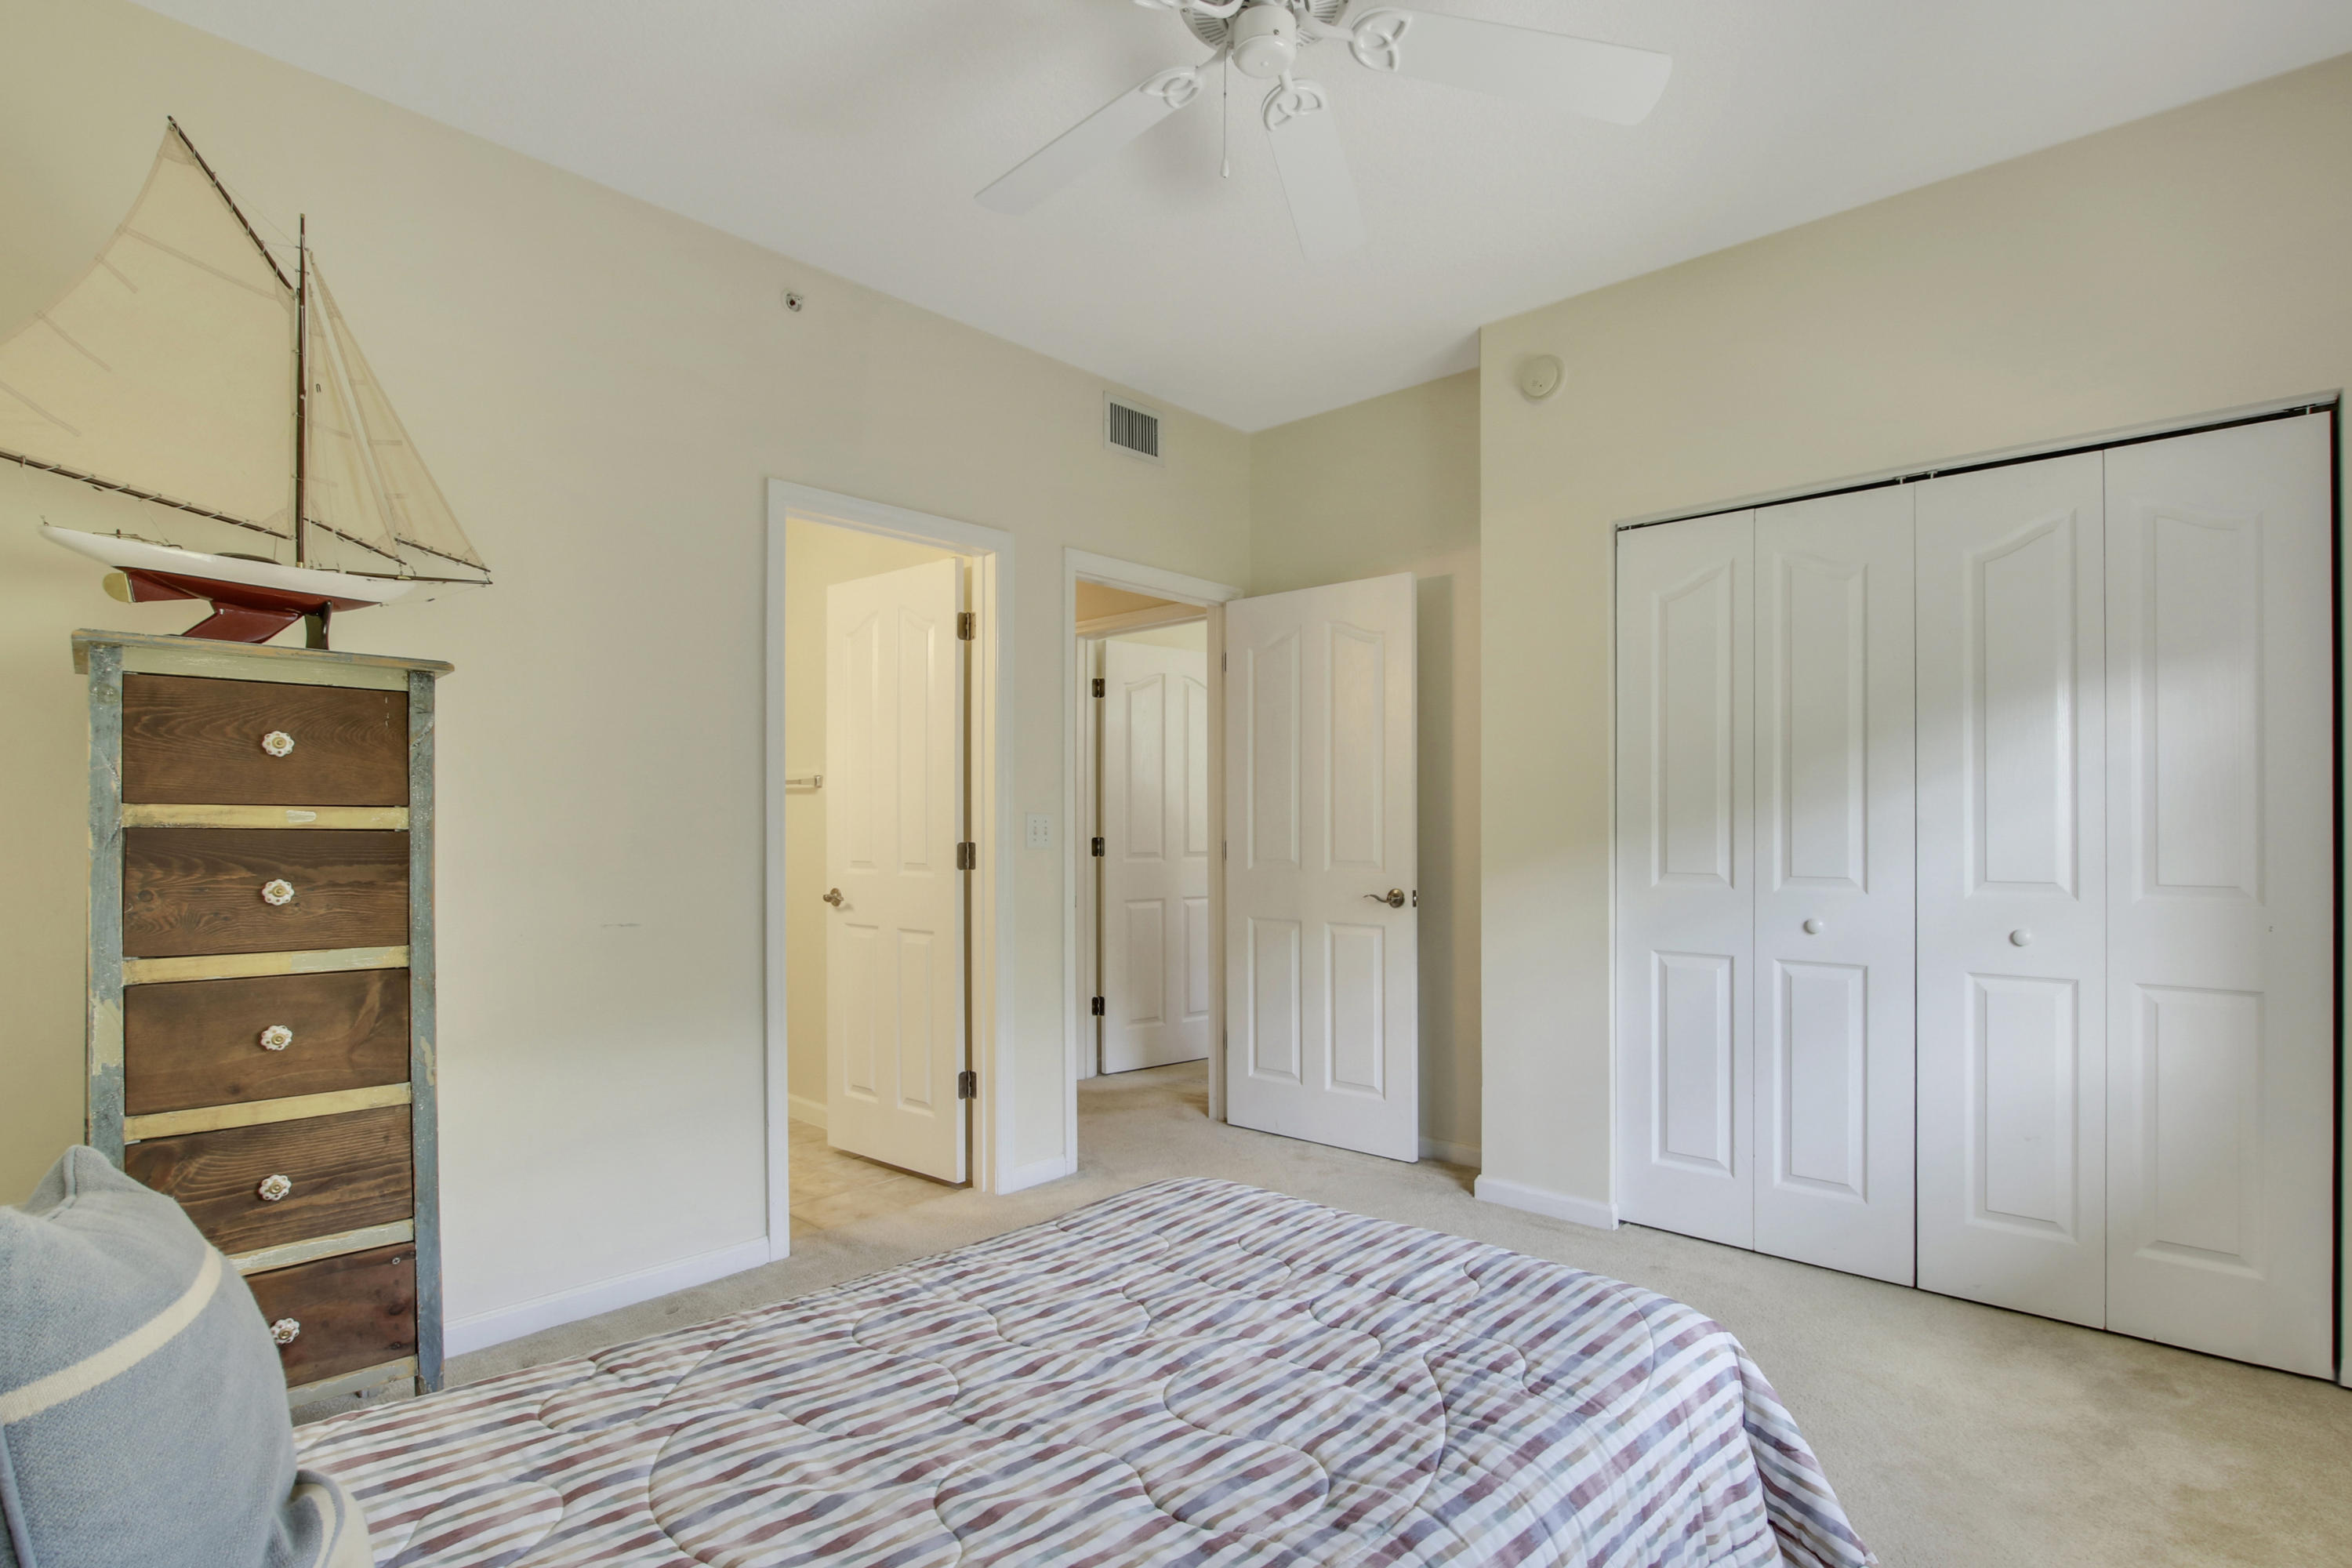 245 Murcia Drive 204  - Abacoa Homes - photo 12